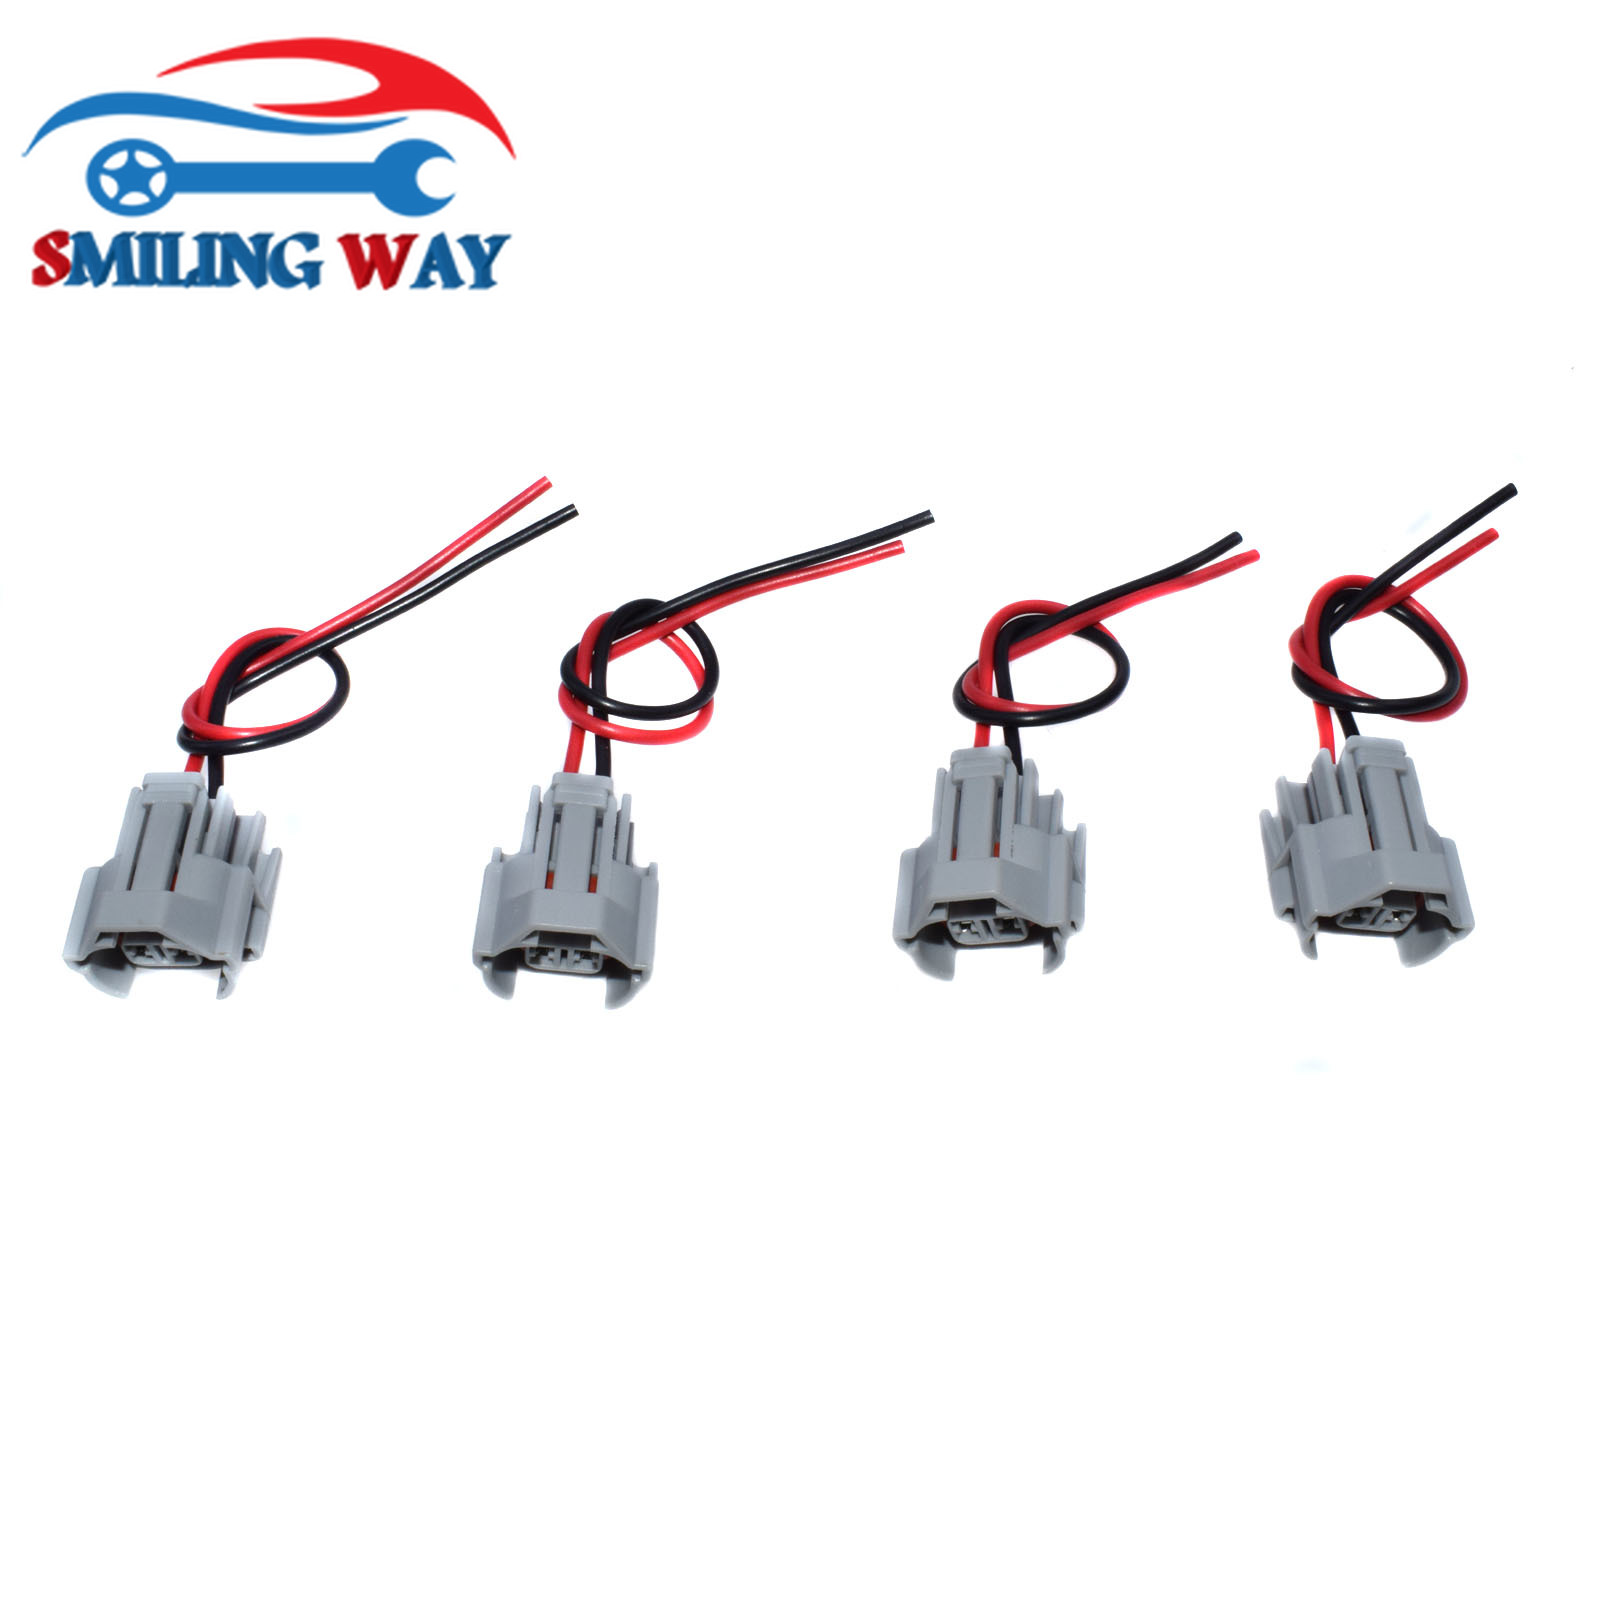 Pigtails for Toyota Mazda Subaru 350Z Set of 6 Denso Fuel Injector Connectors